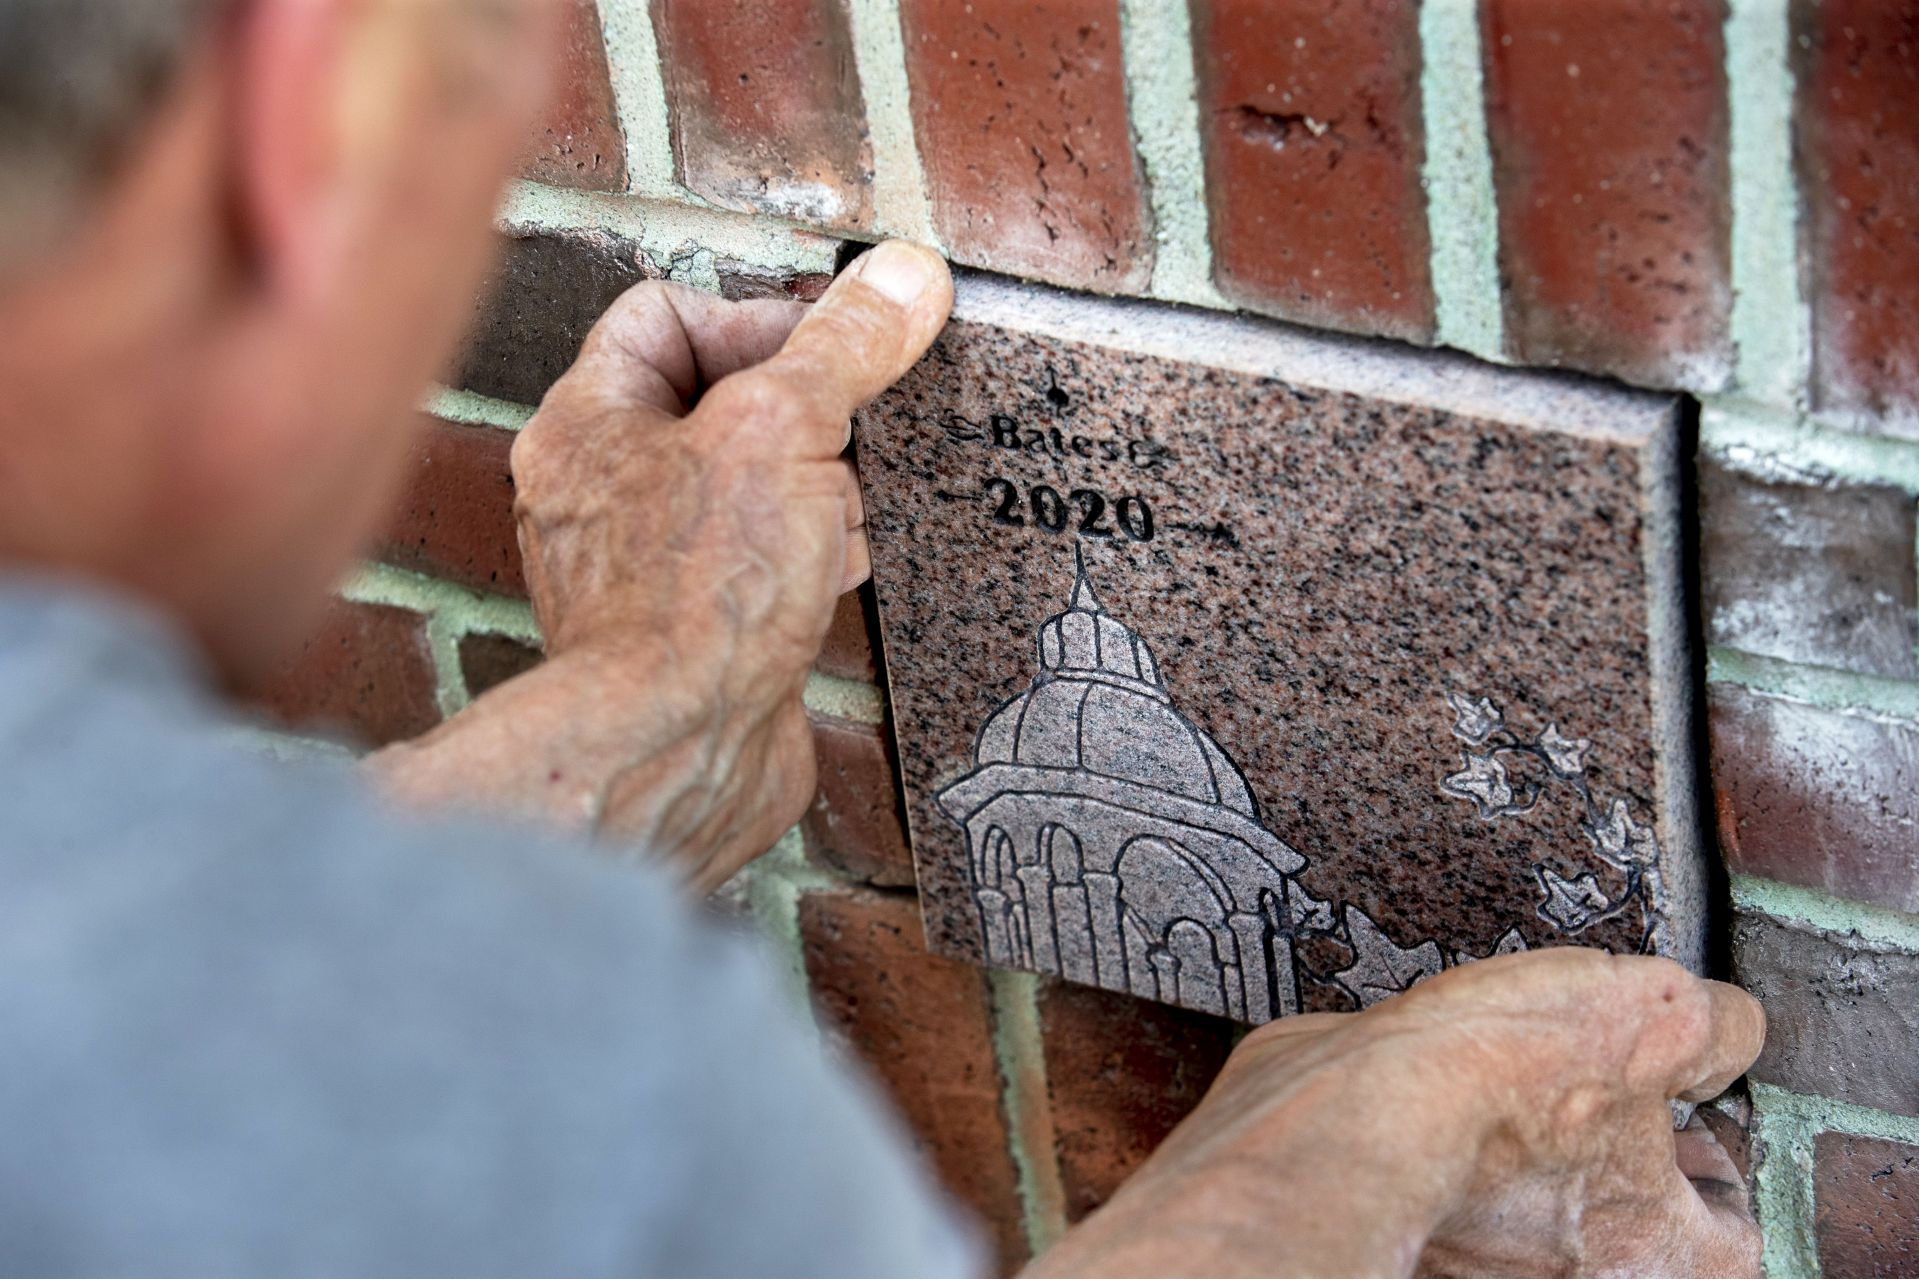 Ron Tardif, mason for facility services, installs the Class of 2020 ivy stone on the front of Pettentill Hall, to the right of the building's entrance.